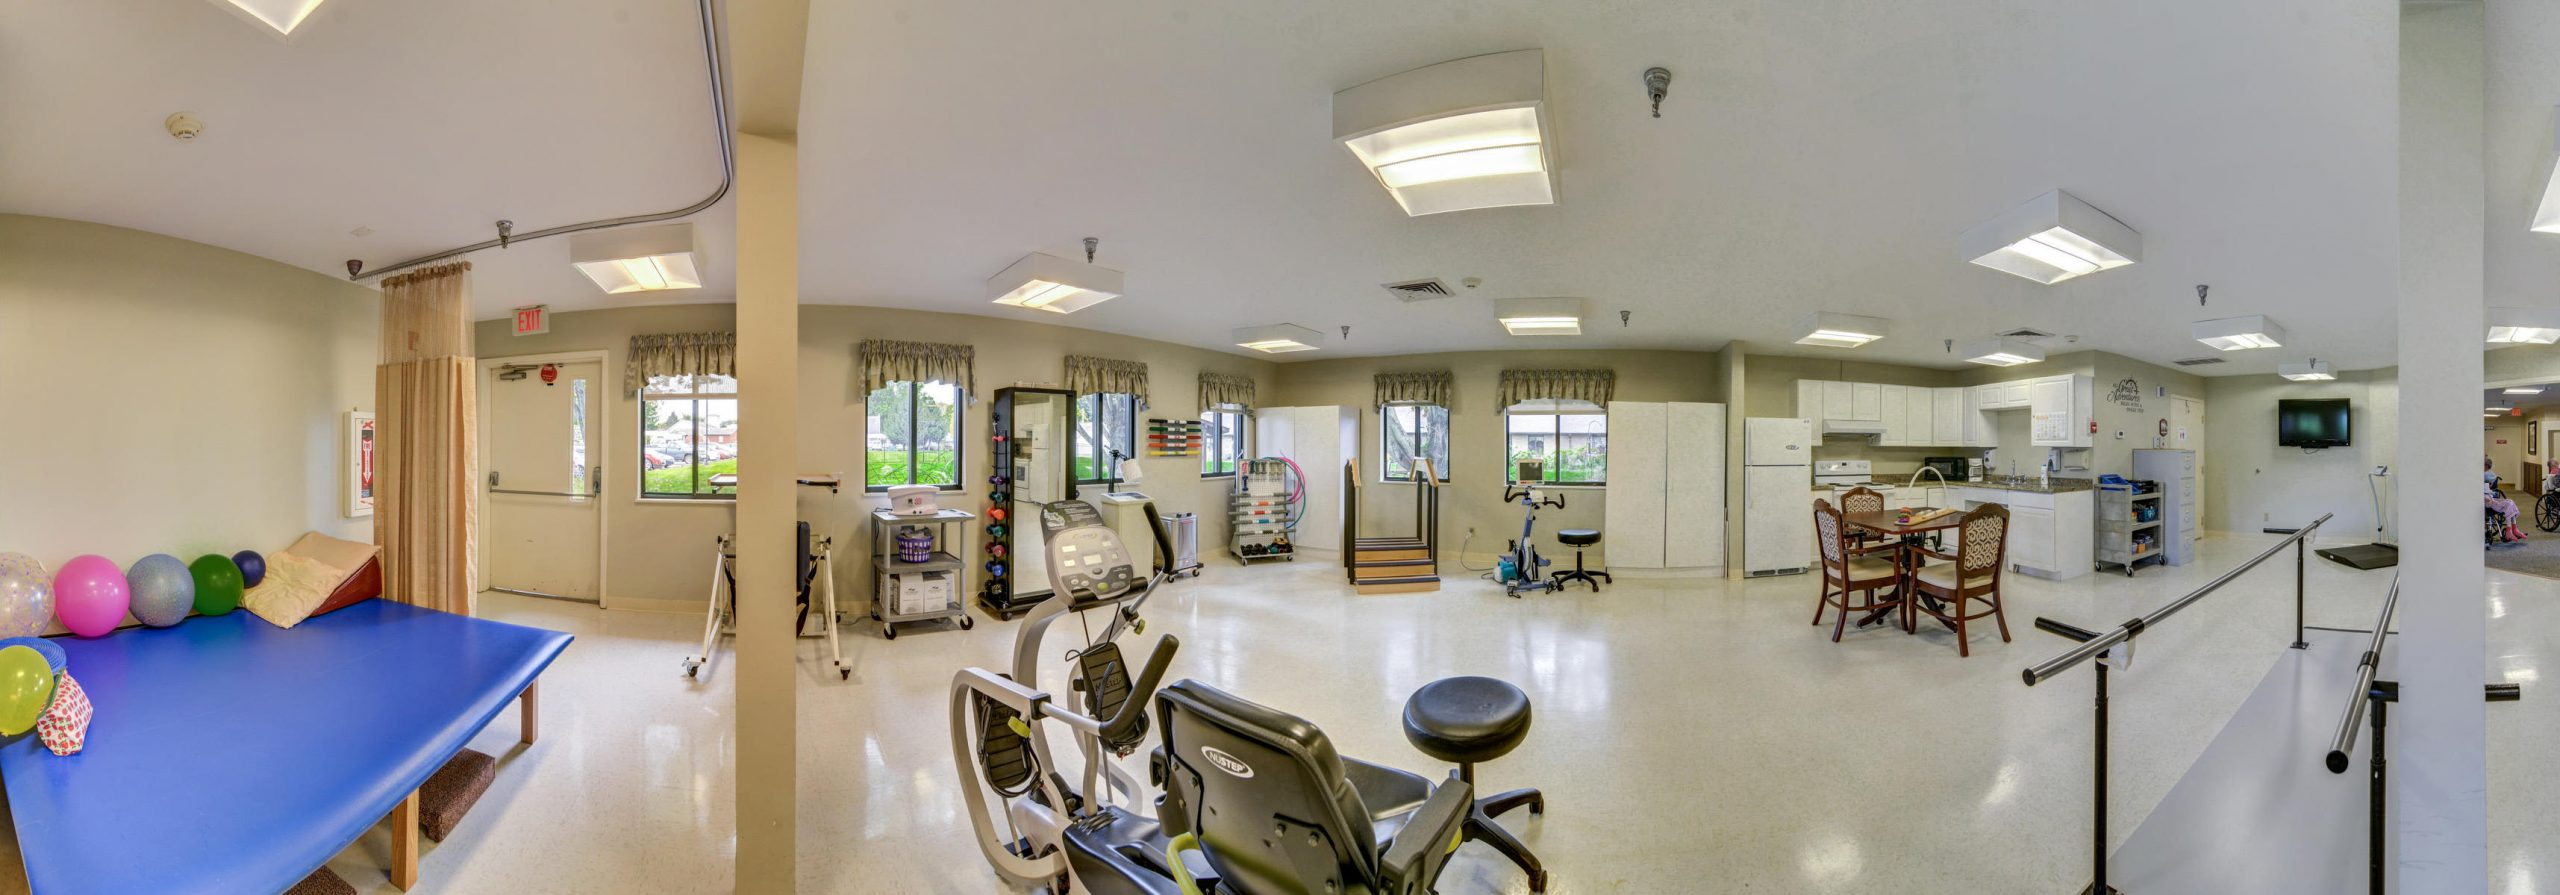 Panoramic view of Stonerise Belmont Therapy and Rehabilitation room with equipment and kitchen area